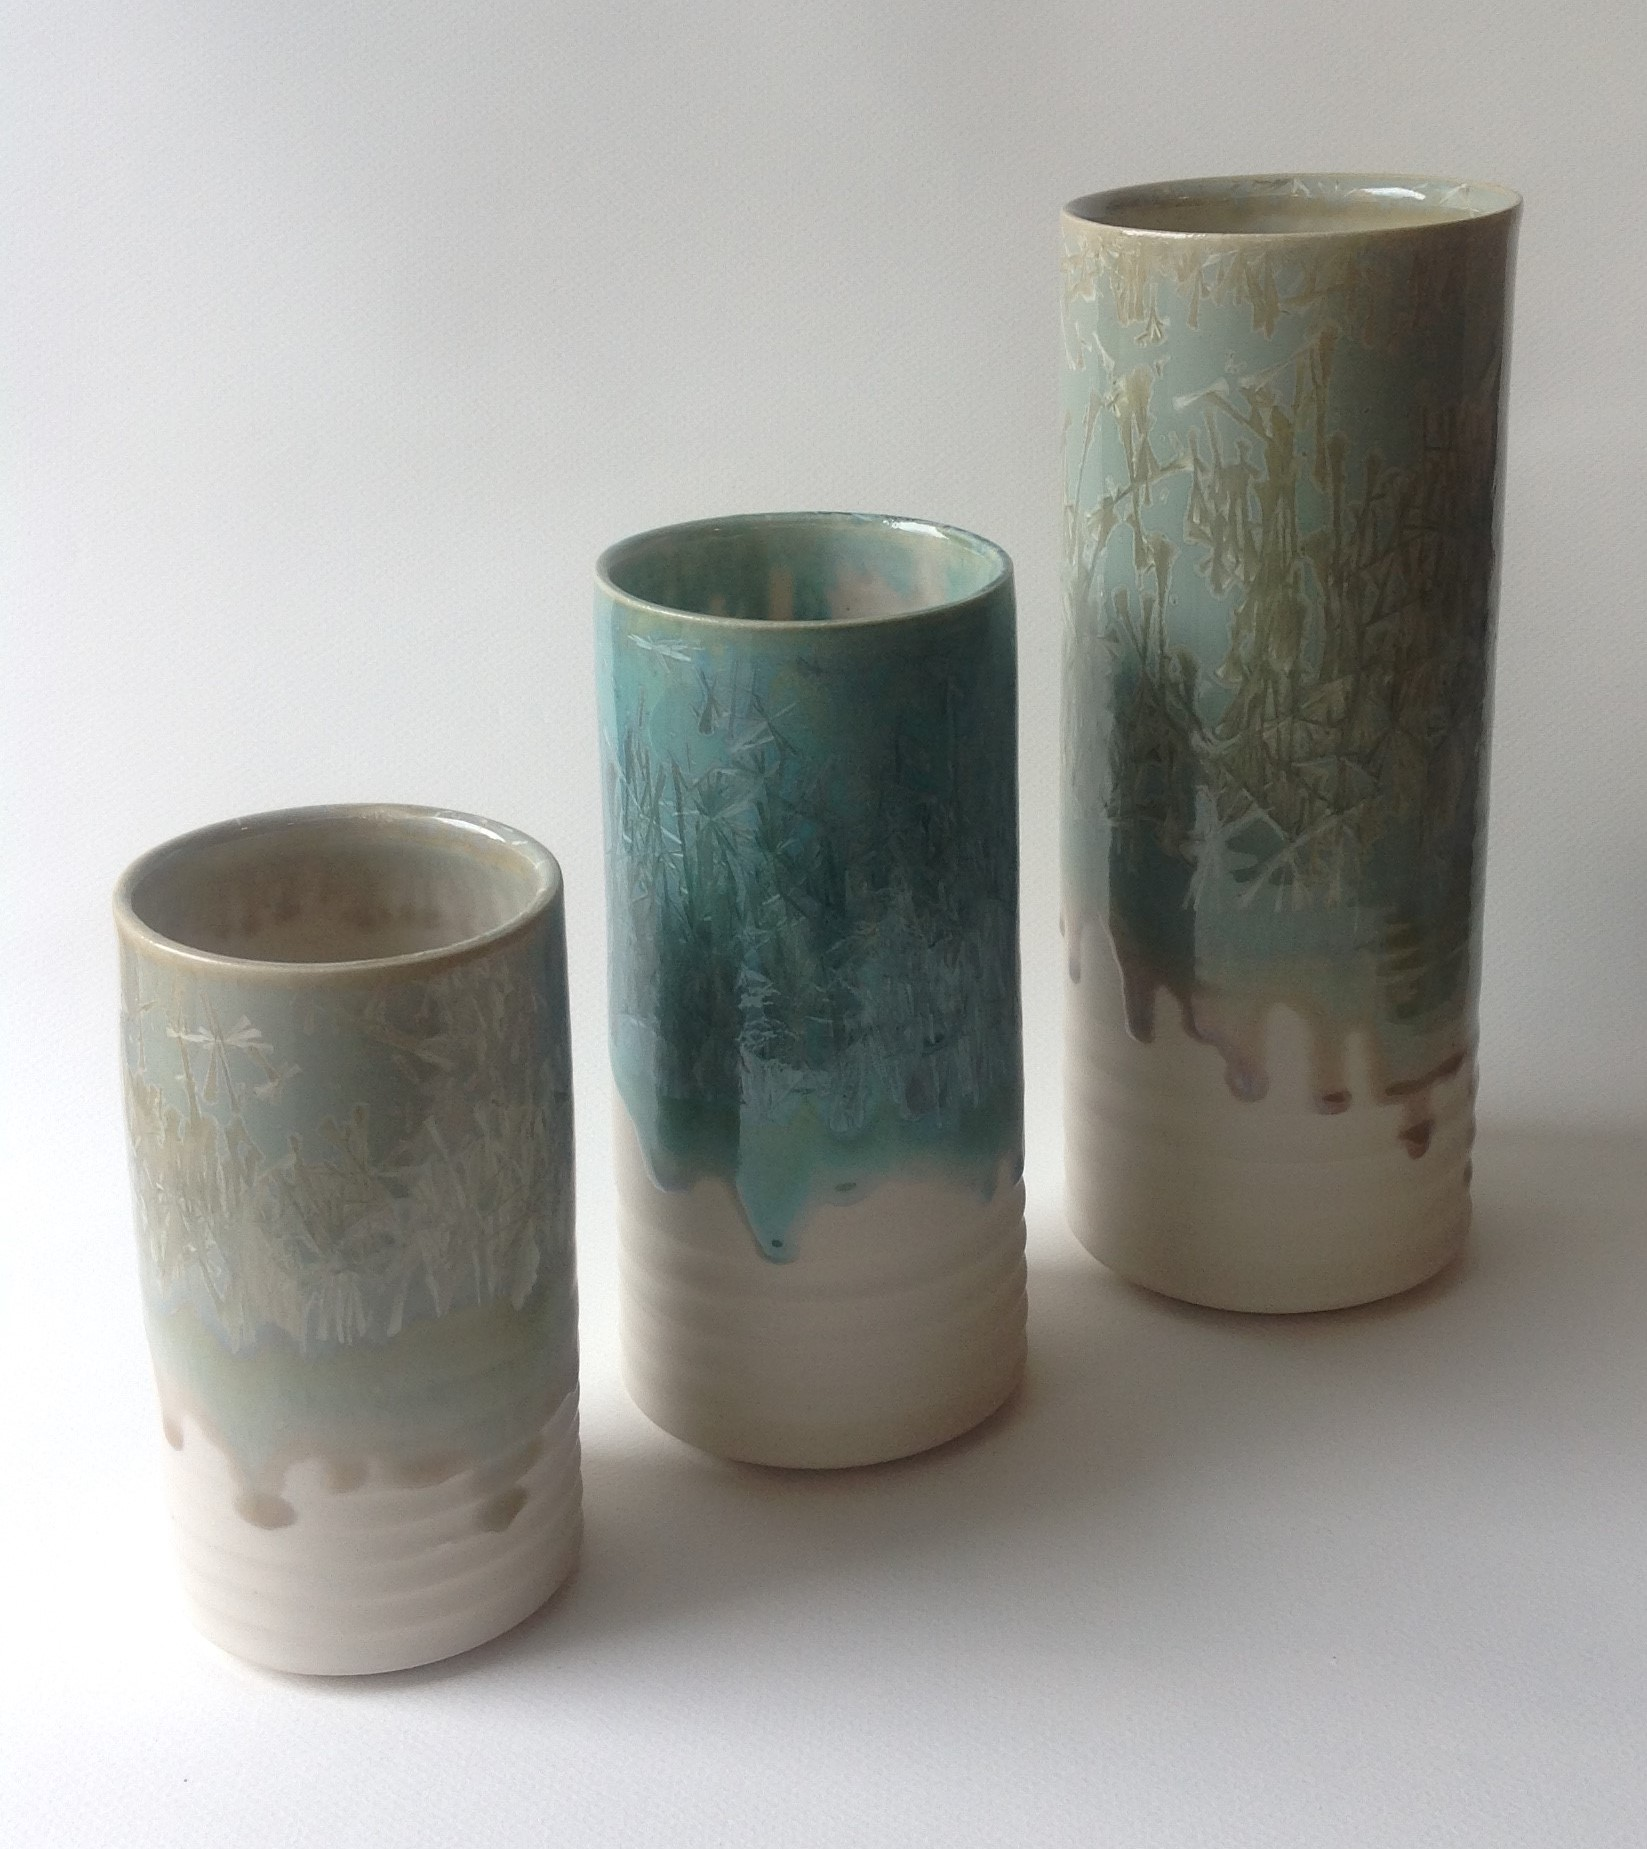 Crystalline glazed vase forms